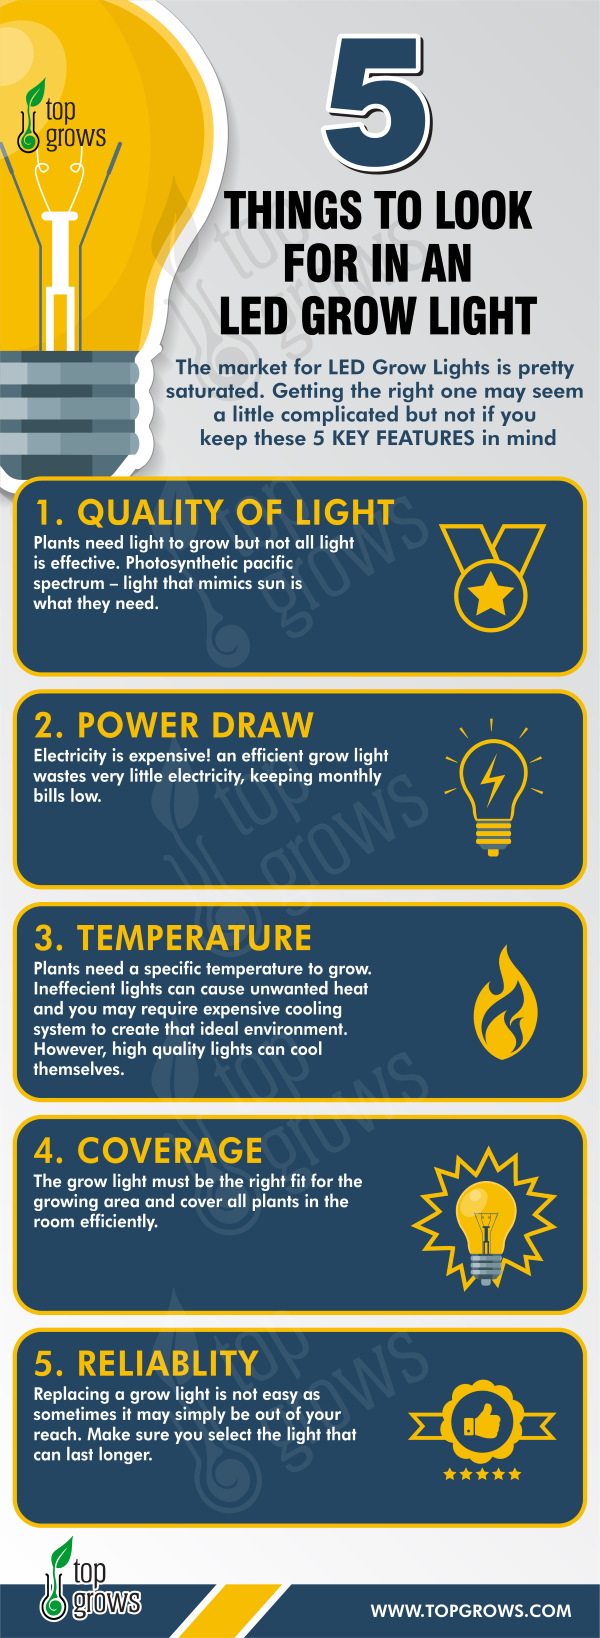 5 Things to Look for in an Led Grow Light